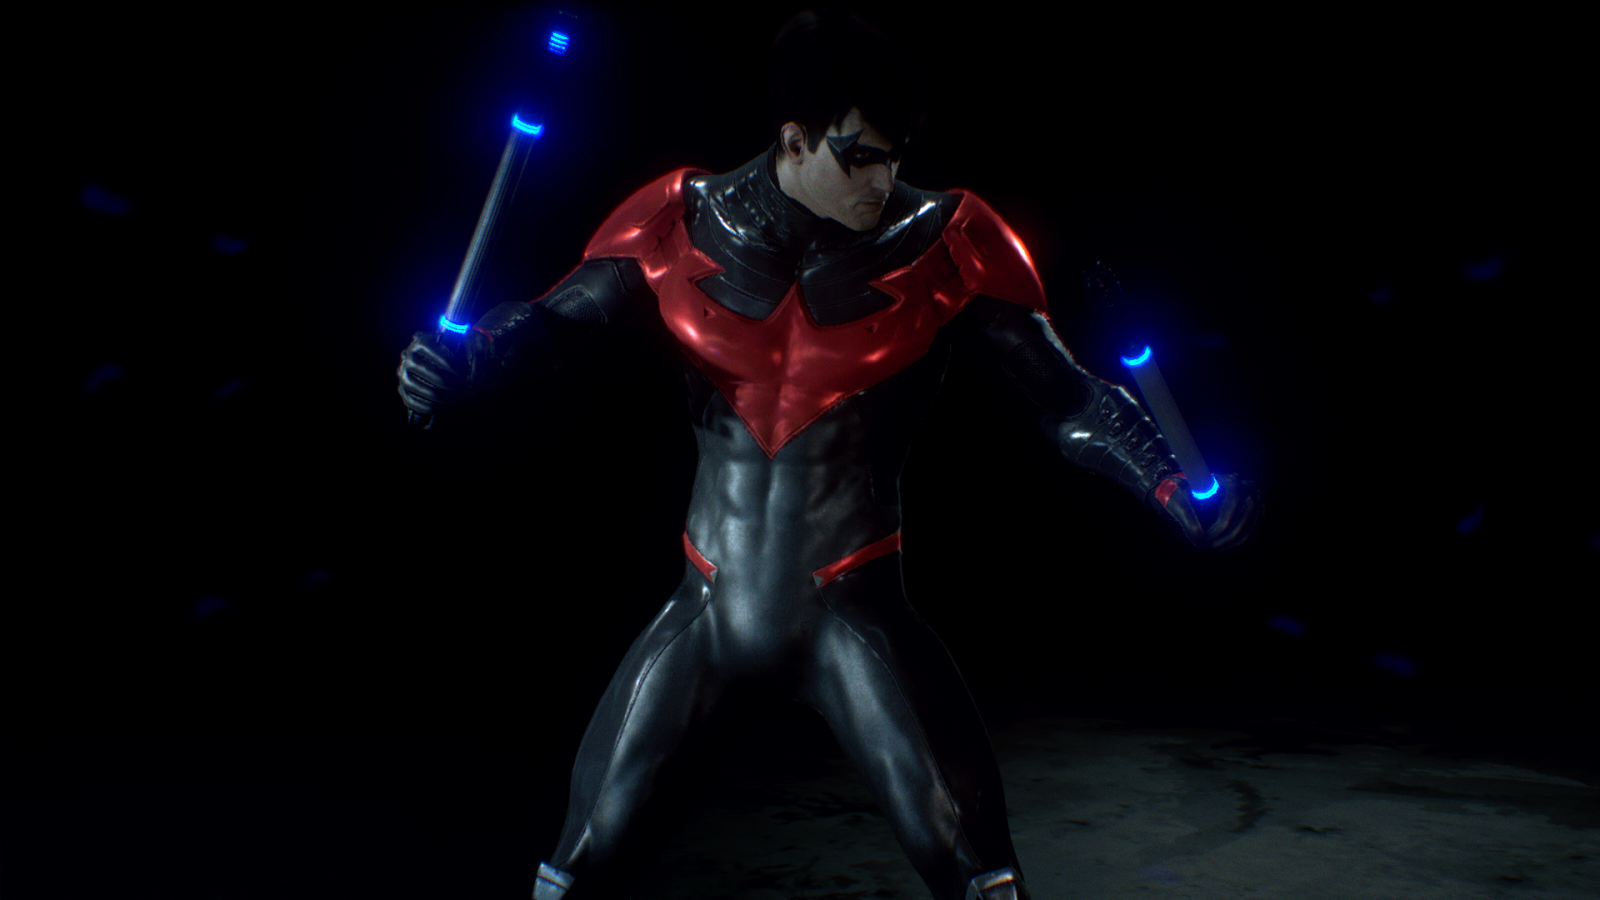 Batman arkham knight nightwing wallpapers 79 wallpapers batman arkham knight hd wallpapers backgrounds wallpaper 1600900 buycottarizona Choice Image